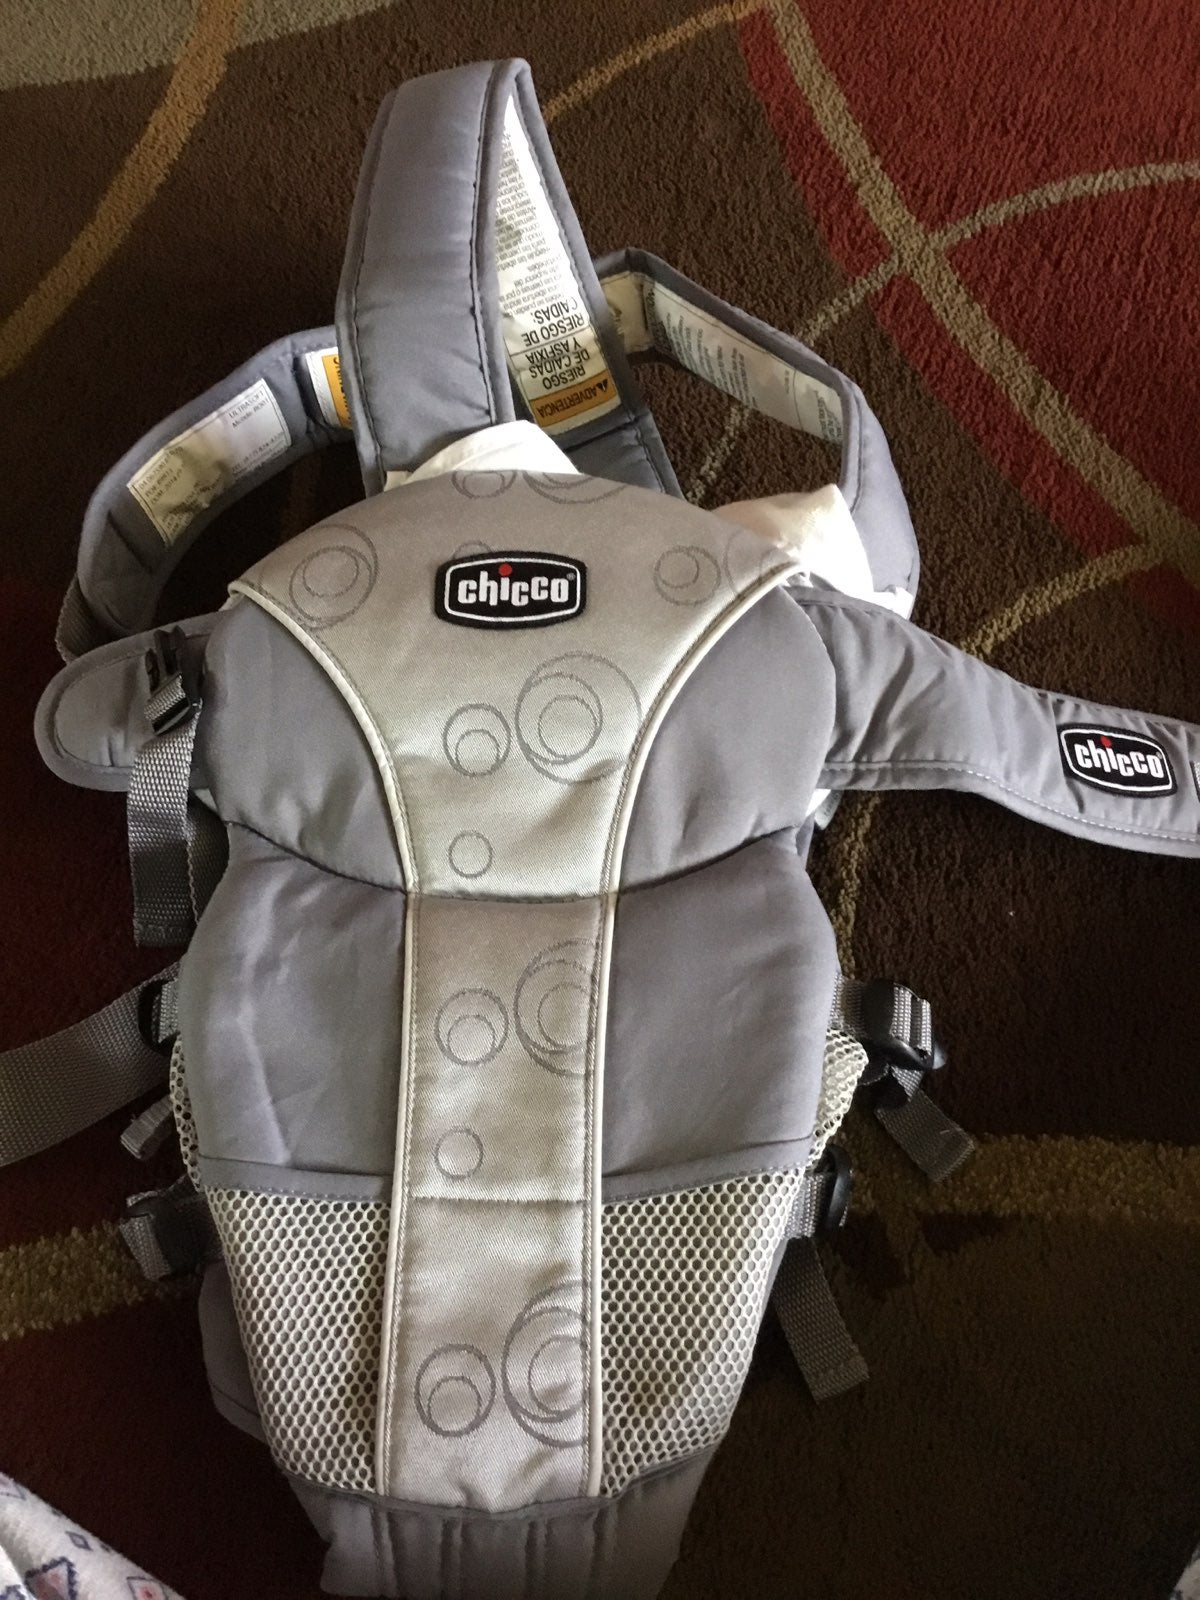 Chicco baby carrier new